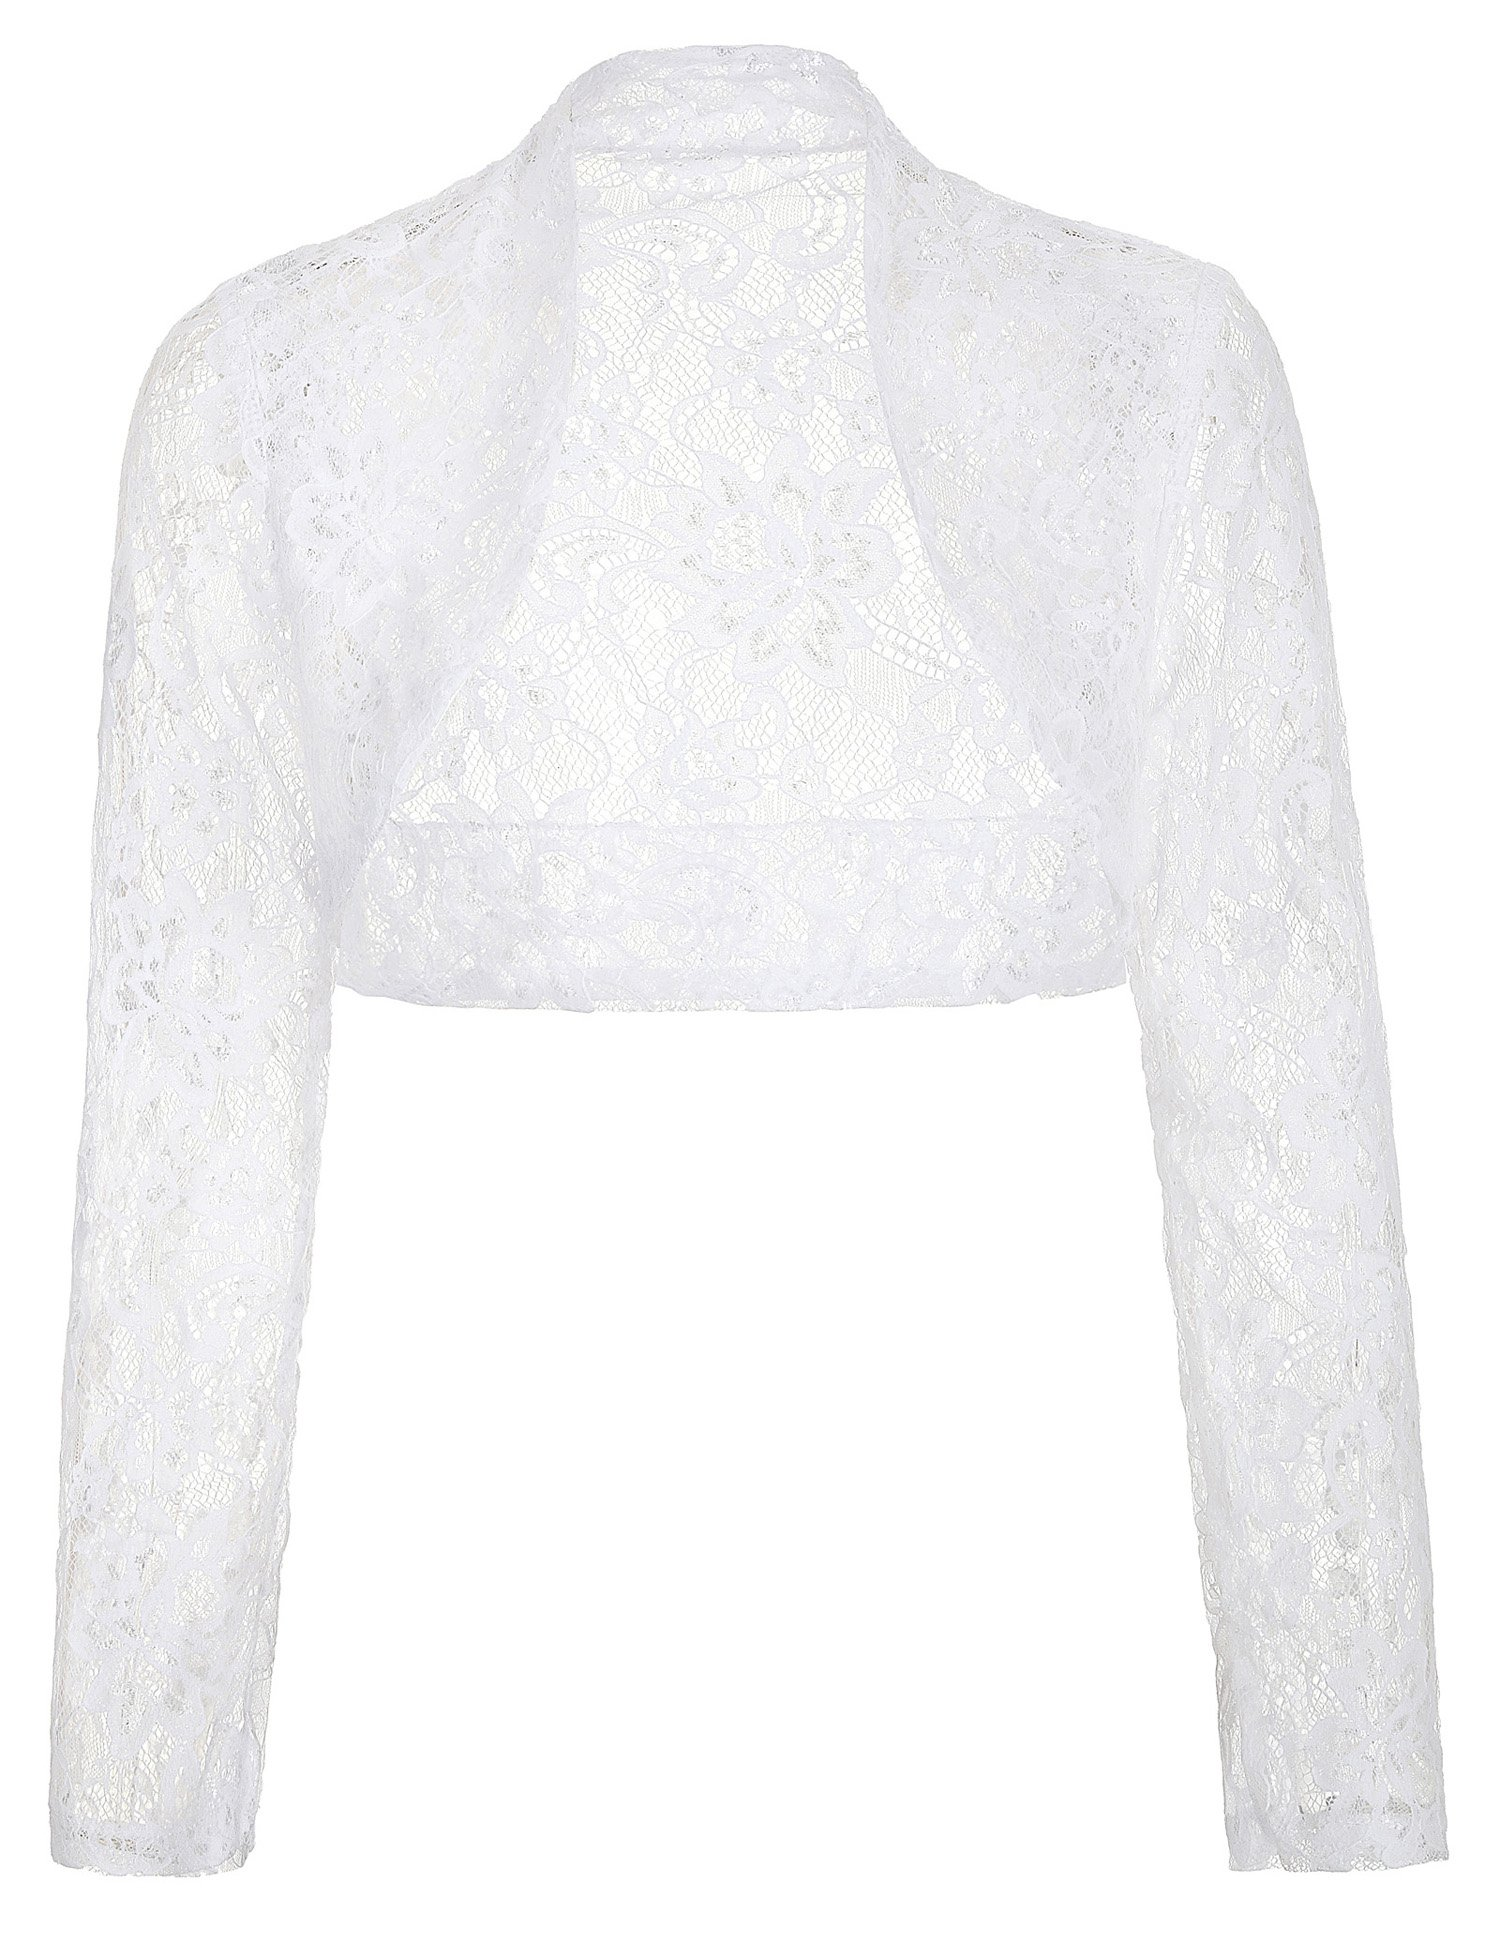 Women's Lace Crochet Bolero Hollow Sheer Knit Cardigan Top (XL, White) by JS Fashion Vintage Dress (Image #1)